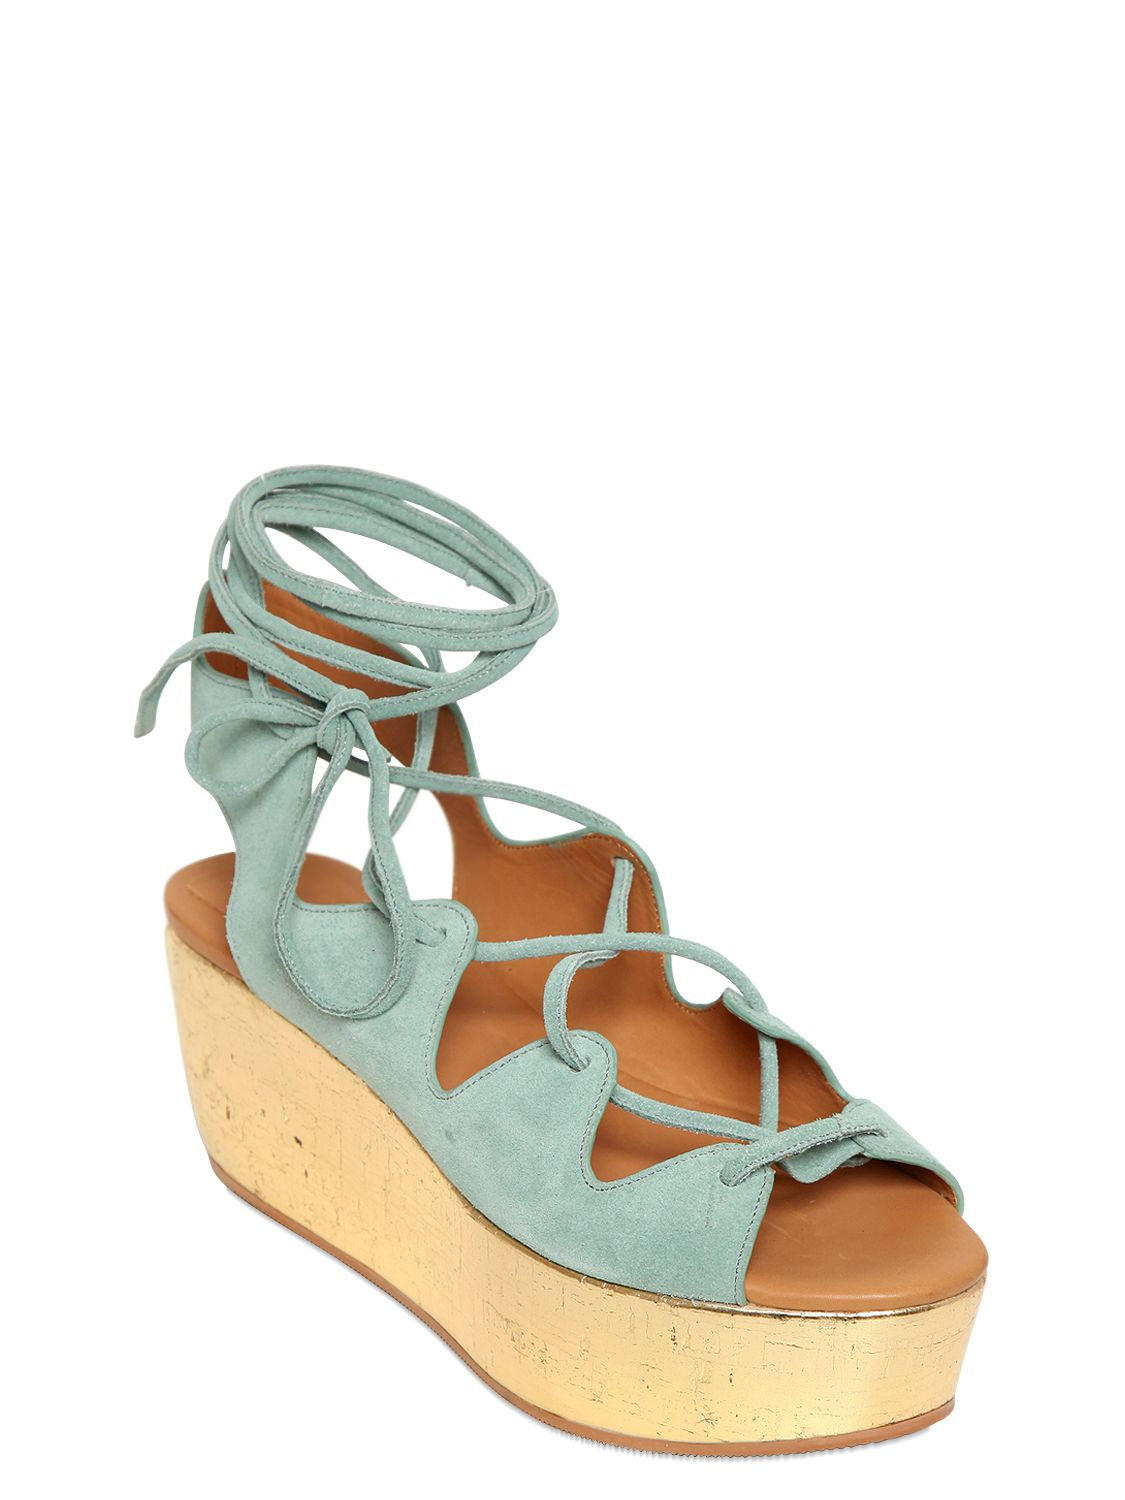 565a3bc07c6 Lyst - See By Chloé 70Mm Suede Lace-Up Wedge Sandals in Blue